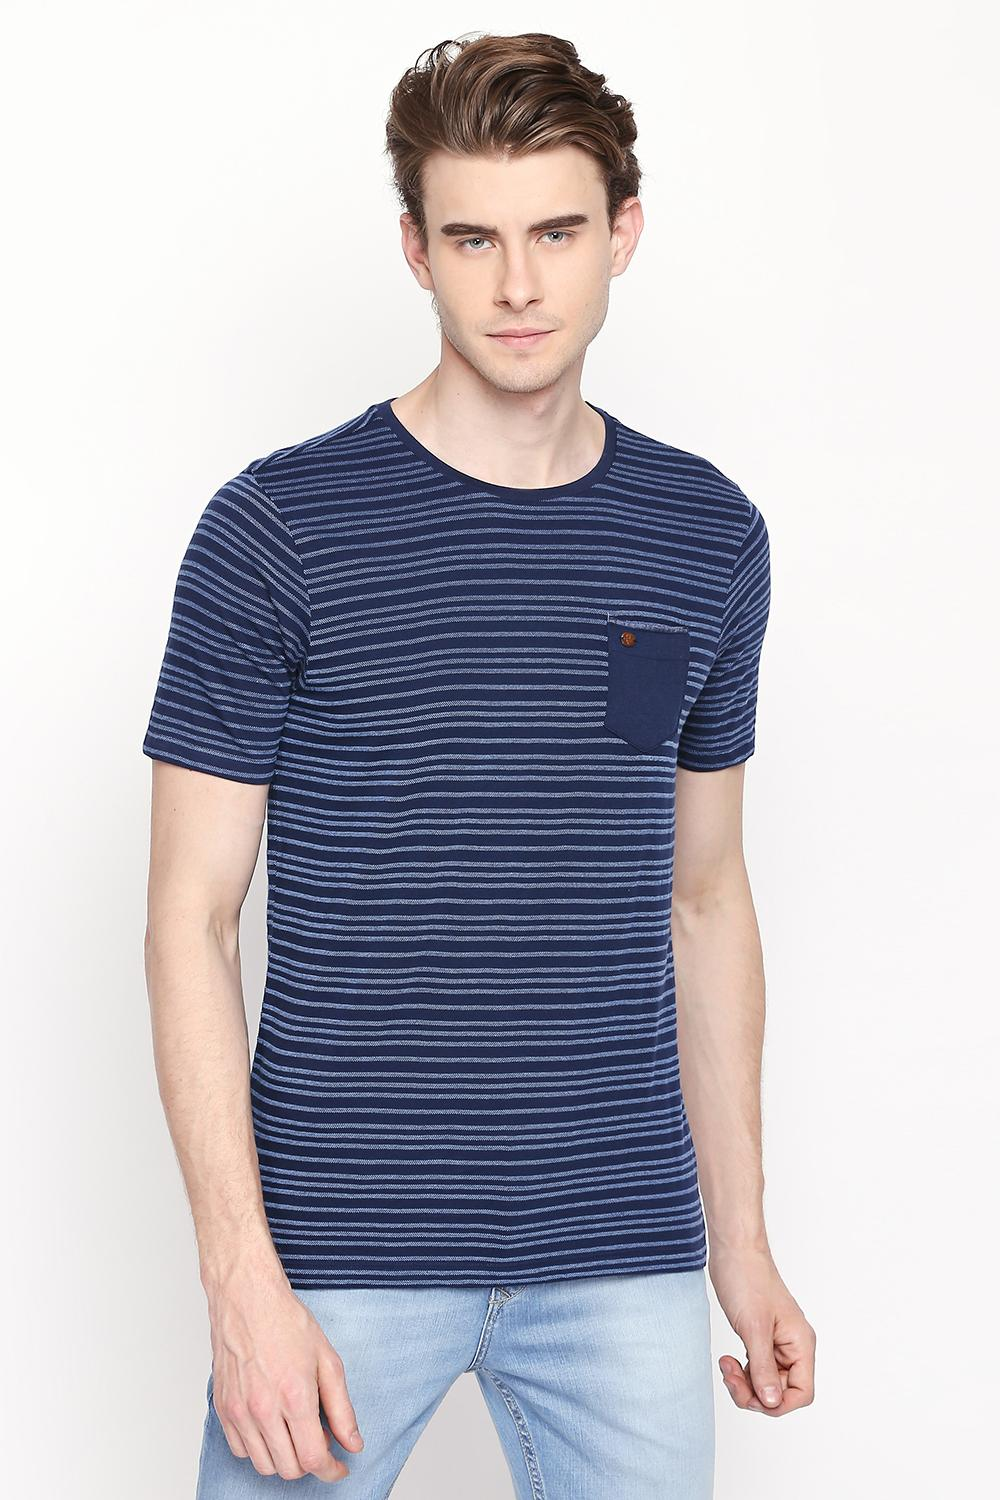 cb62407772 Buy T Shirts for Men Online with Best Price in India